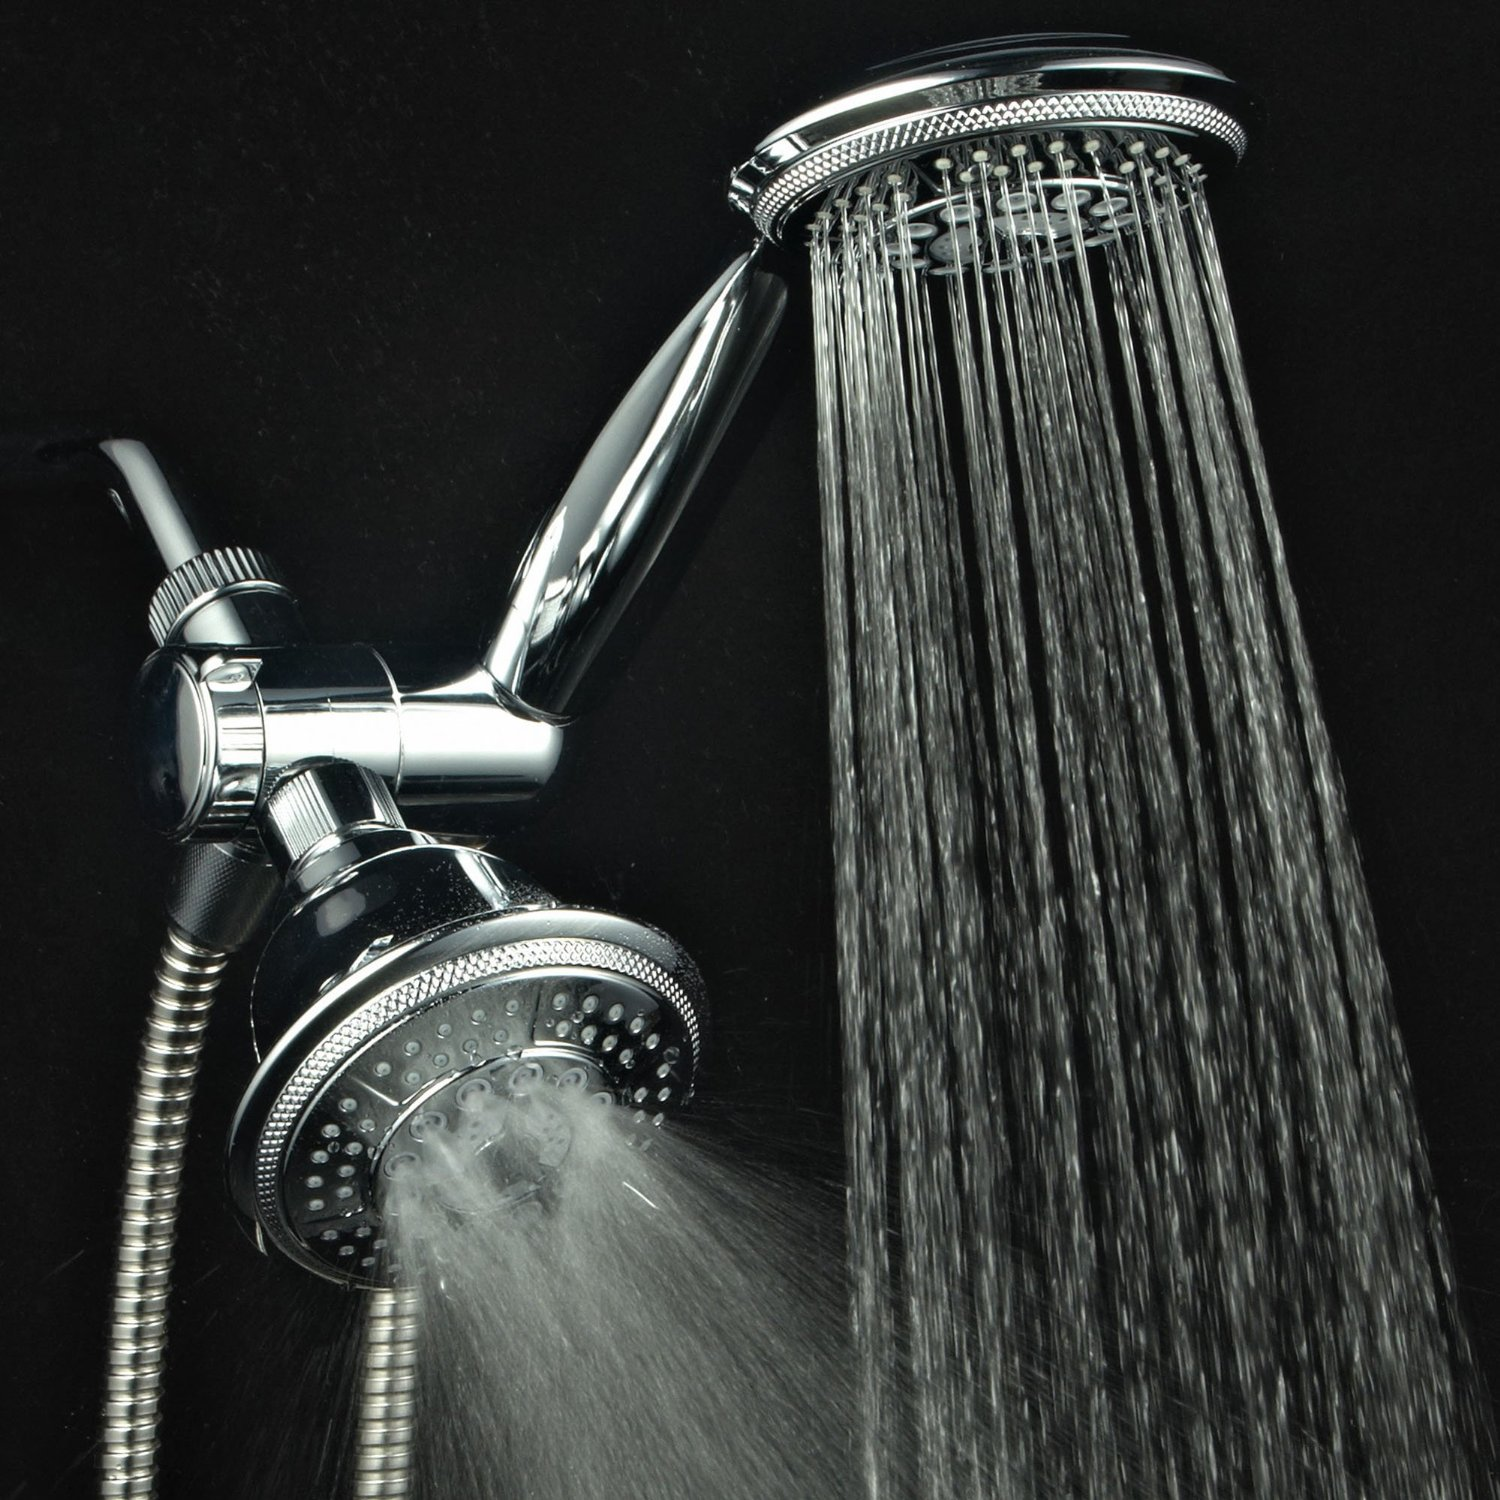 Best Rain Shower Head For Low Water Pressure 2018 Reviews & Guide